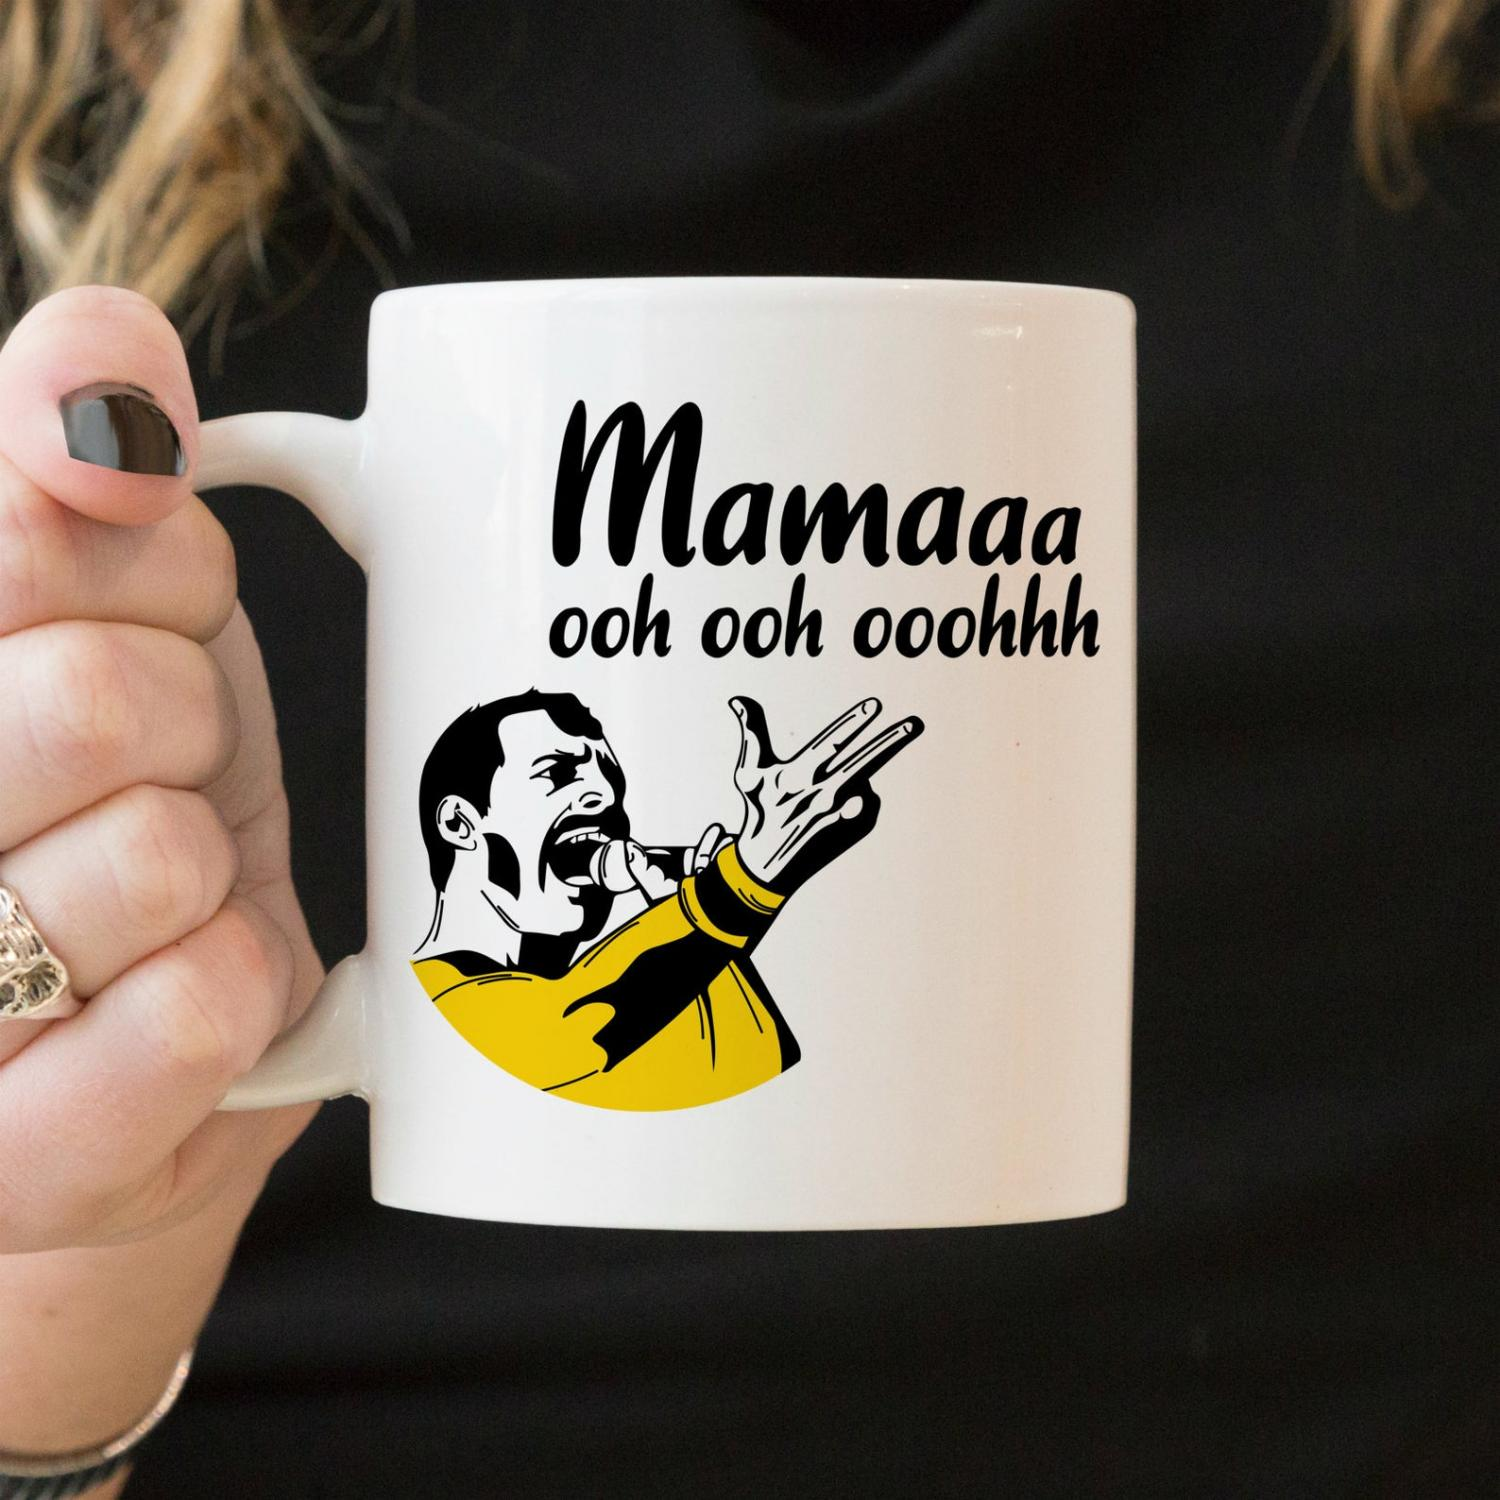 MAMA OOH OOH OOOHHH (Queen Freddy Mercury Mother's Day Mug)